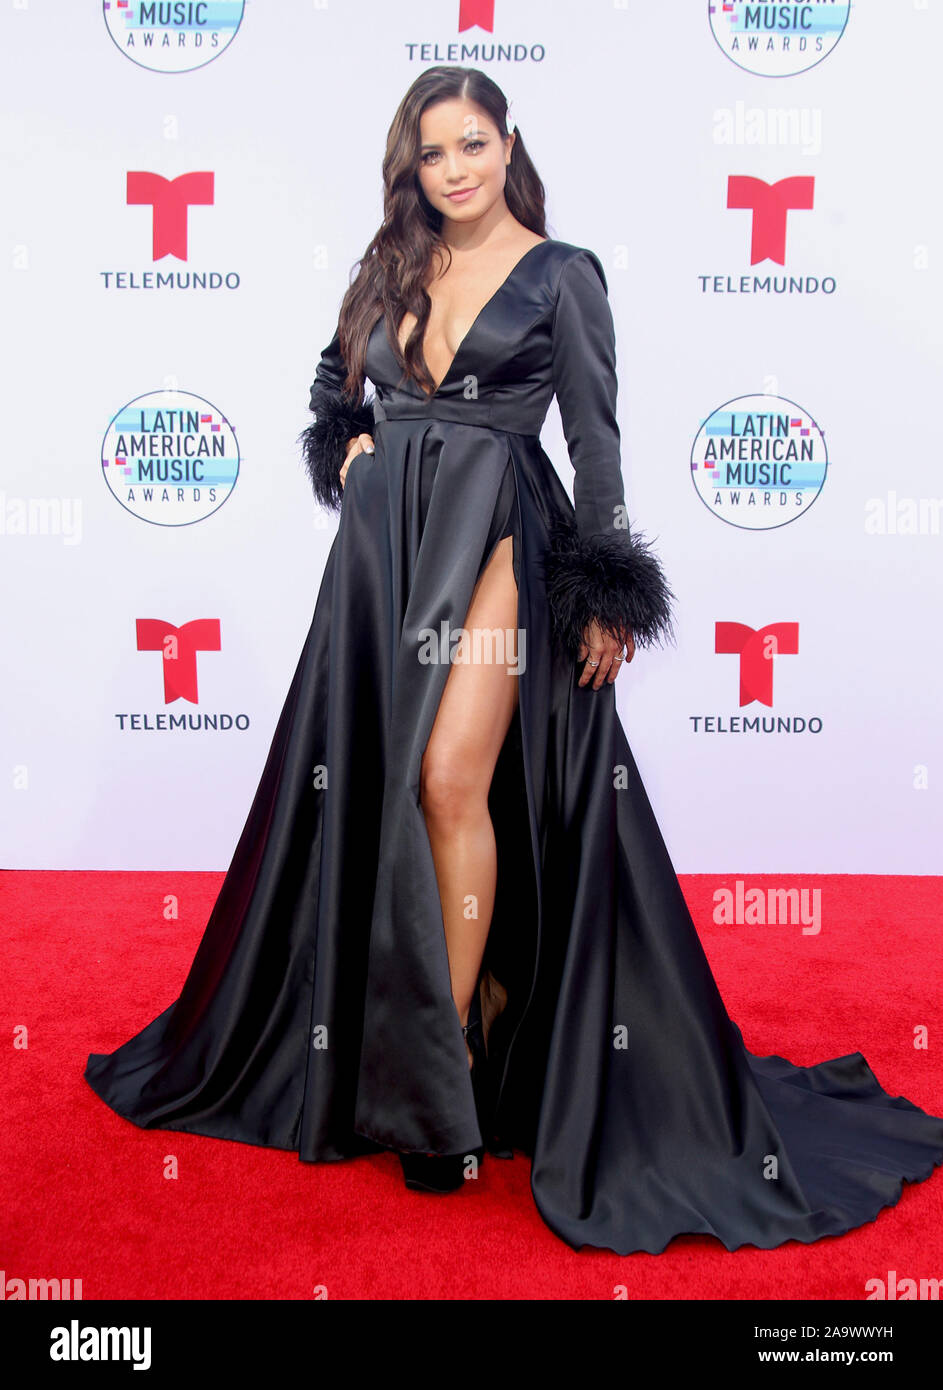 Latin American Music Awards 2019 held at the Dolby Theatre in Hollywood, California. Featuring: Emilia Where: Los Angeles, California, United States When: 17 Oct 2019 Credit: Adriana M. Barraza/WENN.com Stock Photo